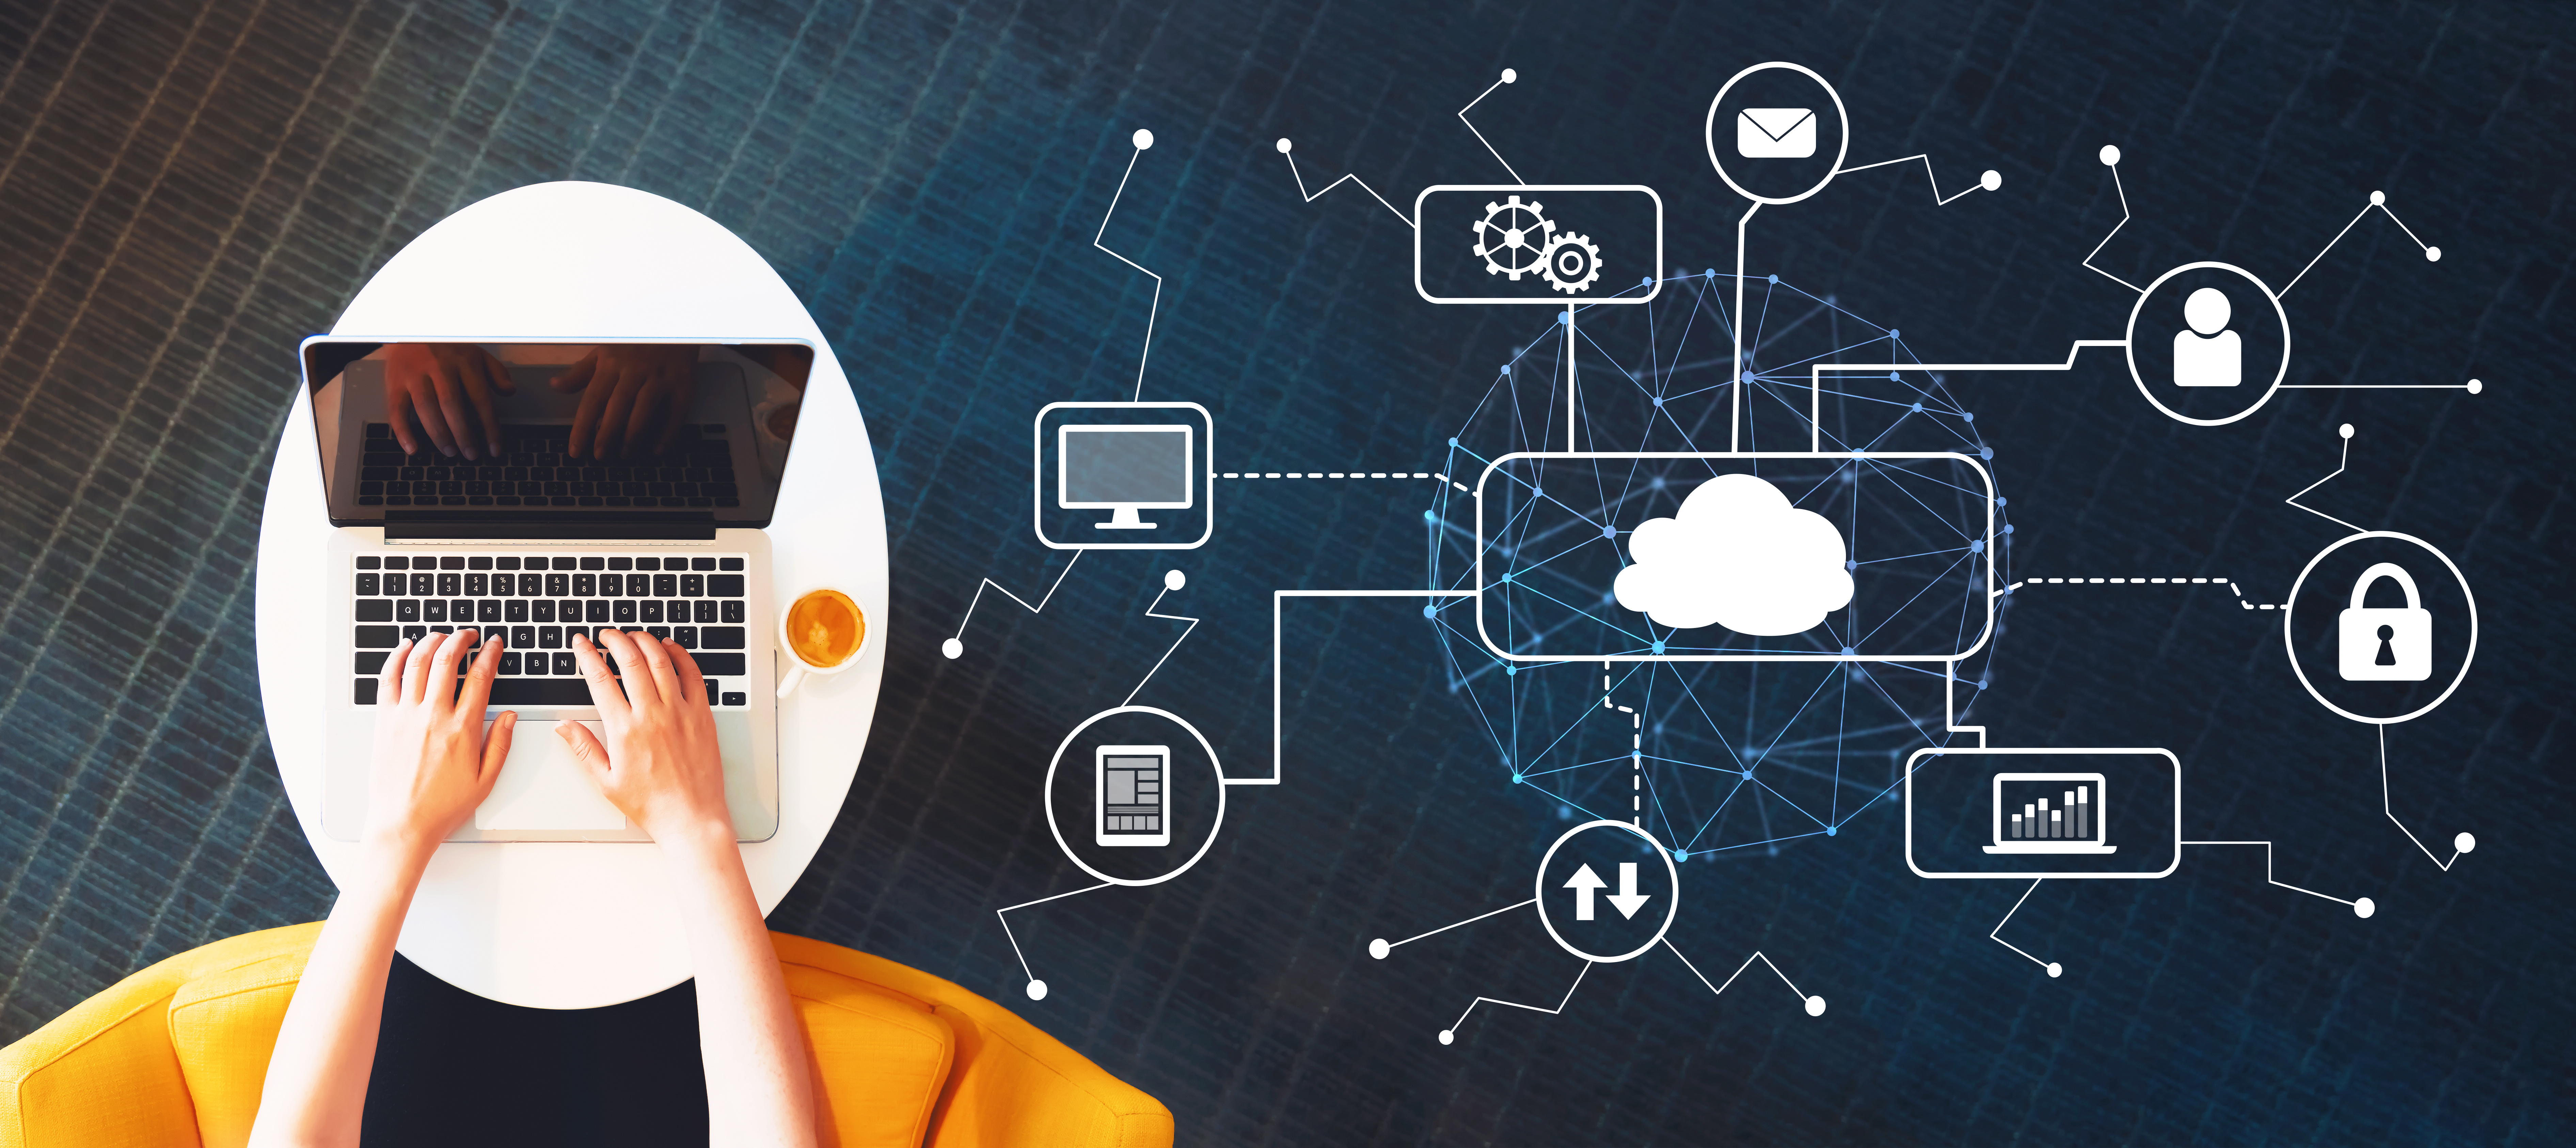 Cloud computing with person using a laptop